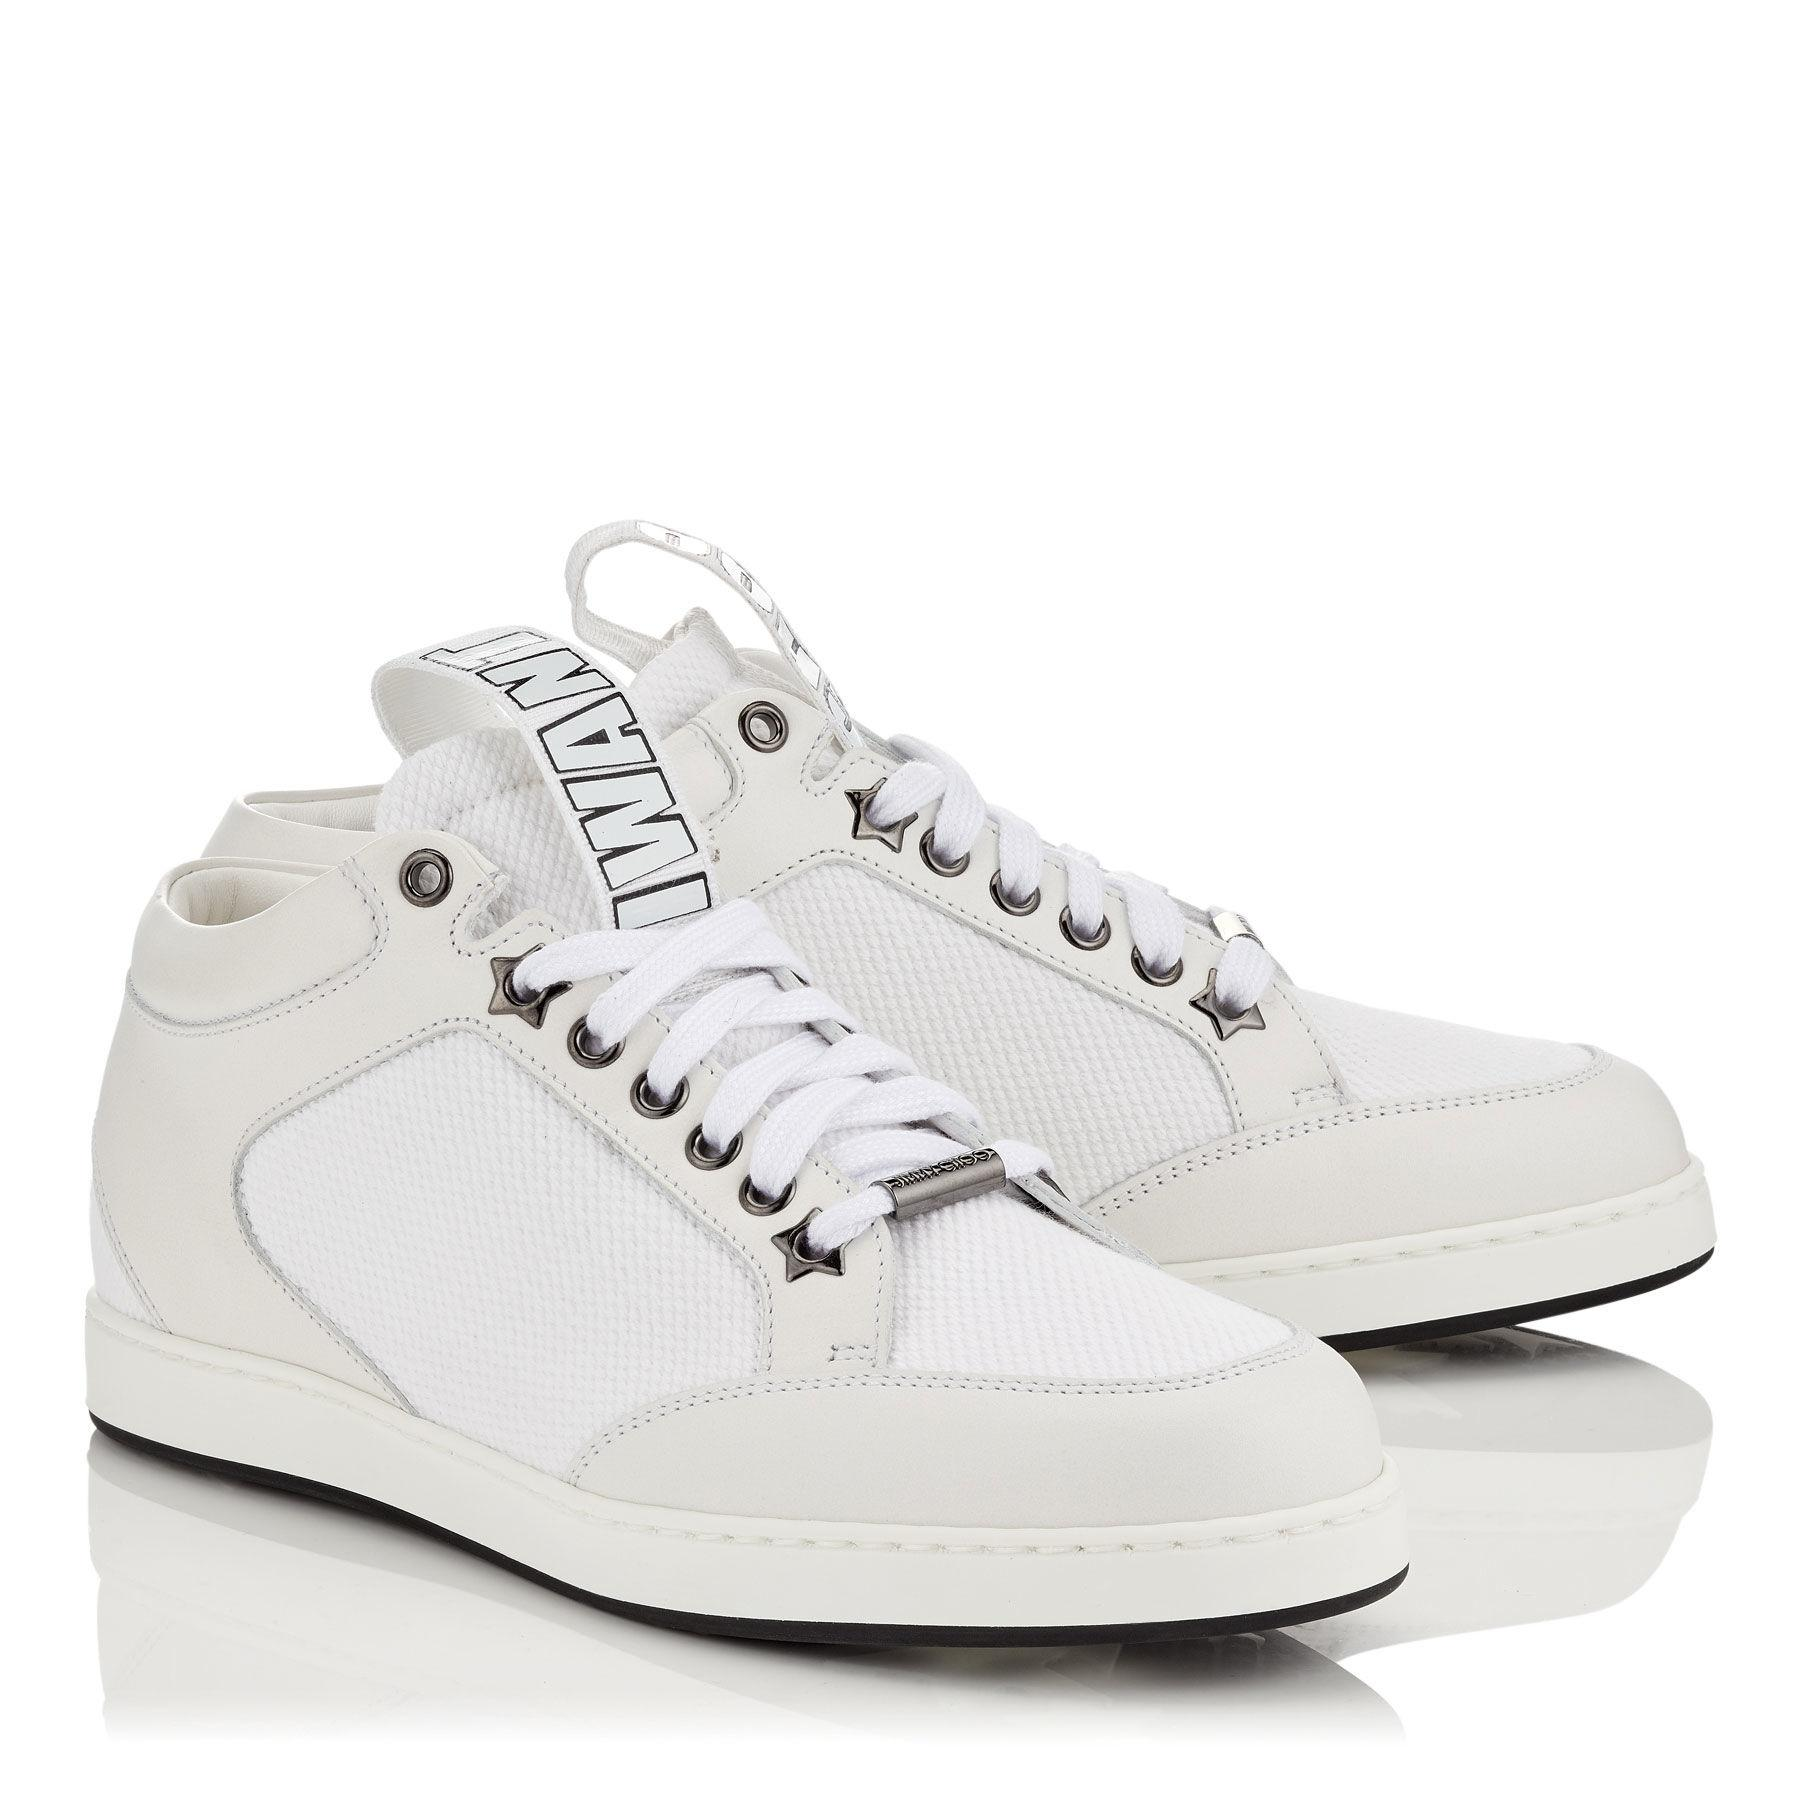 White Jimmy Choo Sneakers Up To 90 Off At Tradesy